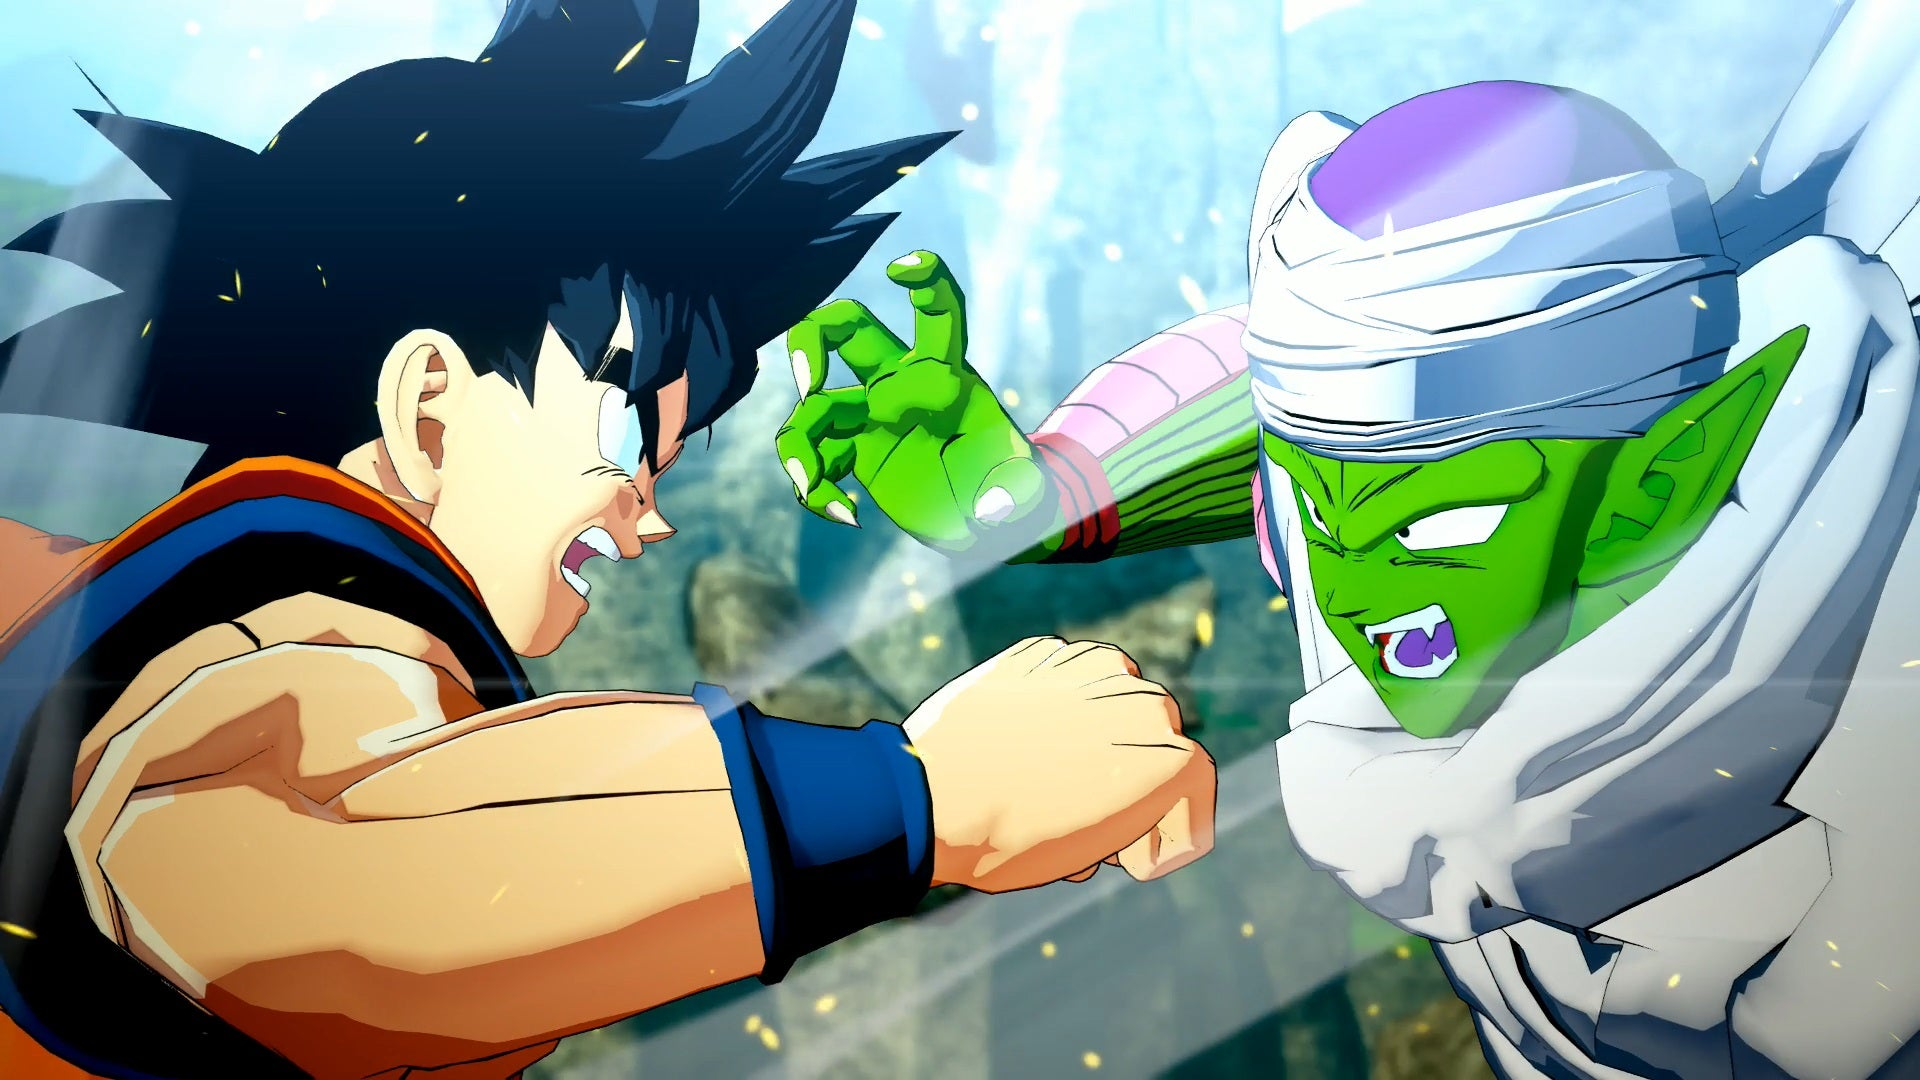 Dragon Ball Z: Kakarot Gets The Anime Right, Down To The Unbalanced Showdowns